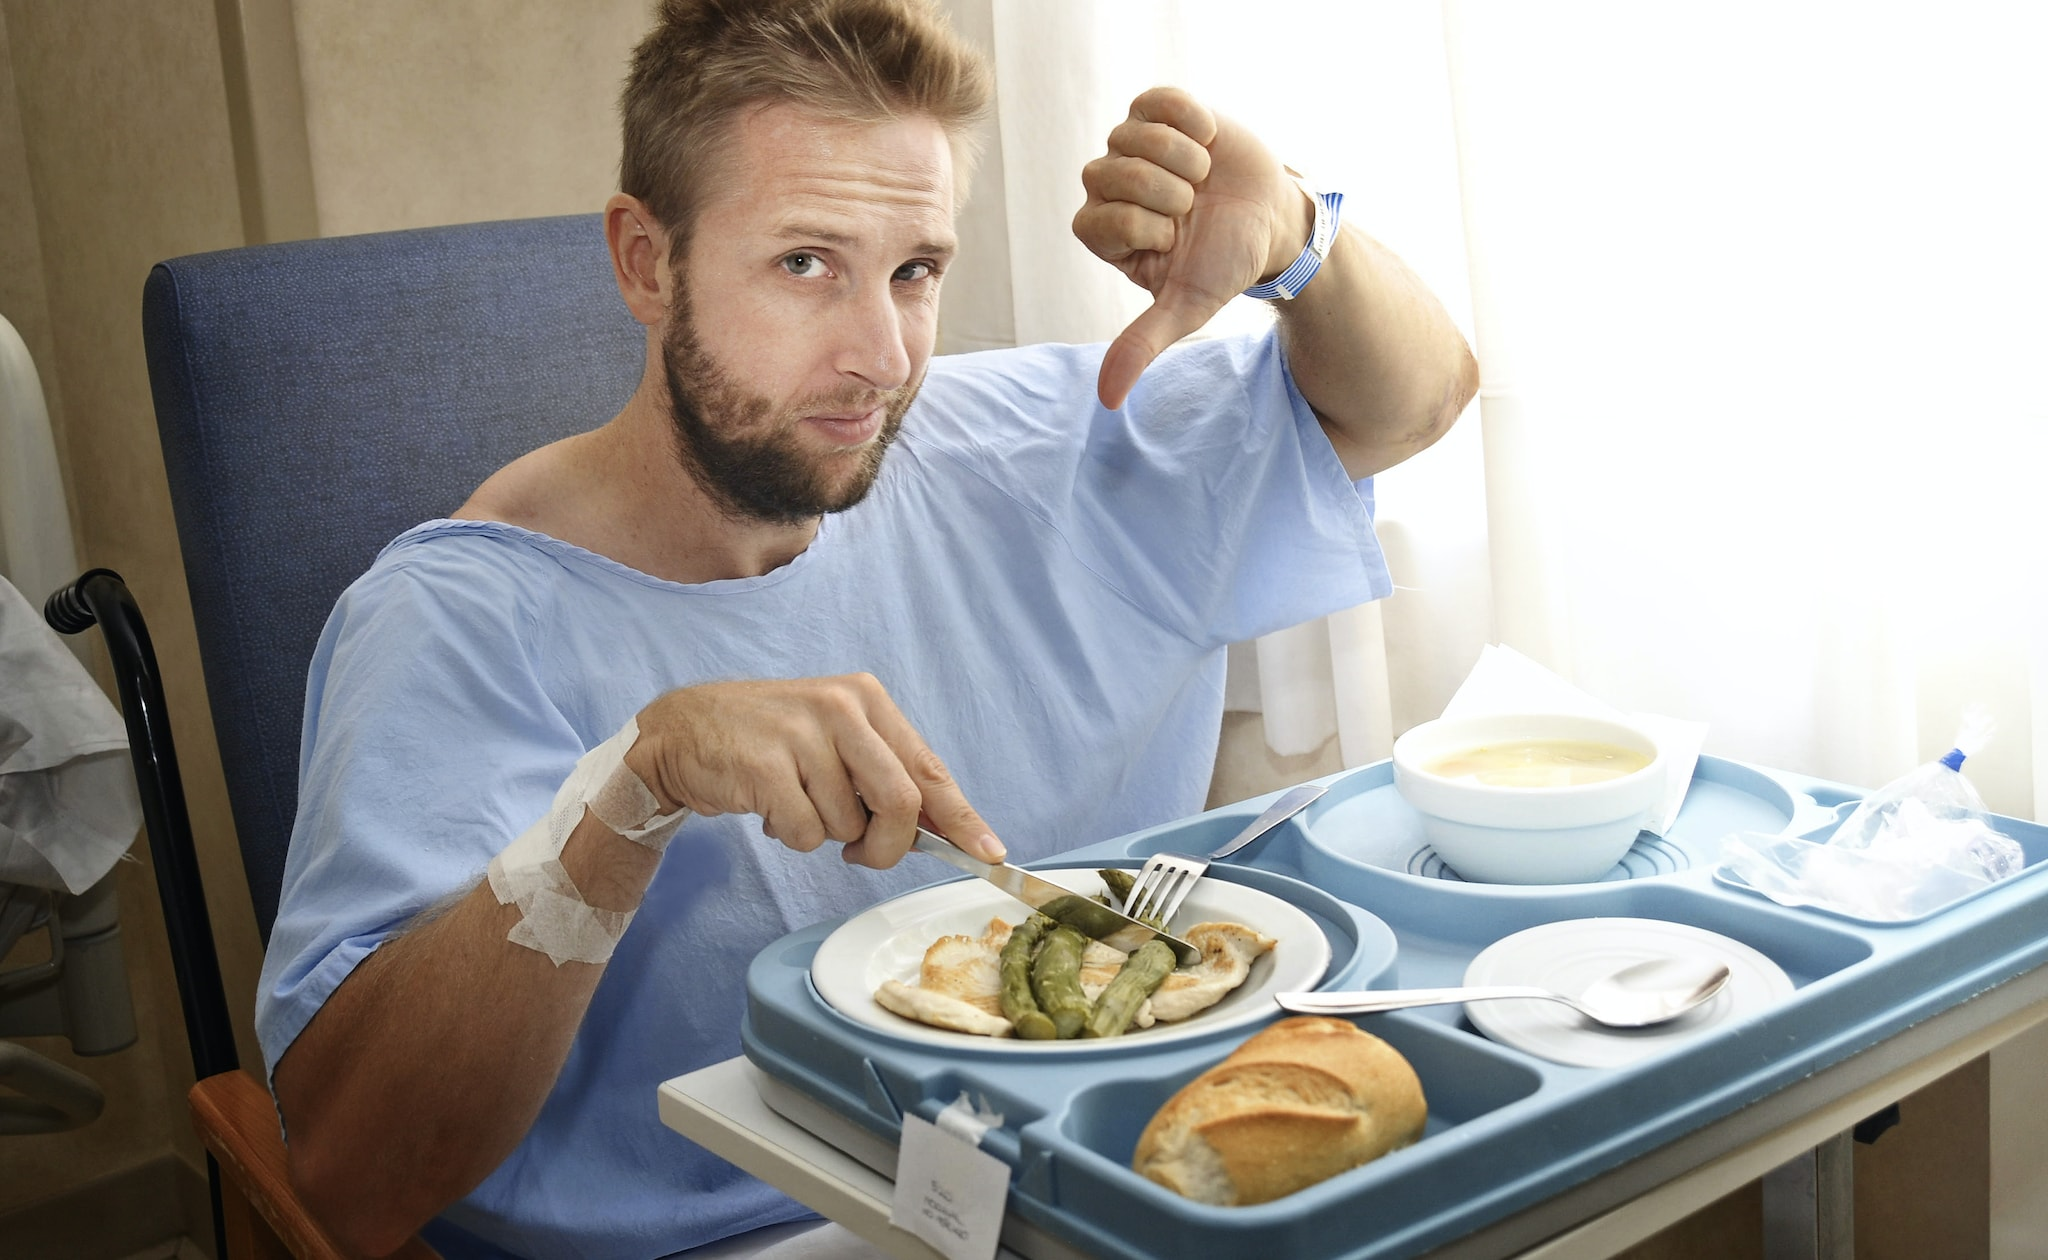 A man in hospital gives his meal a thumbs-down